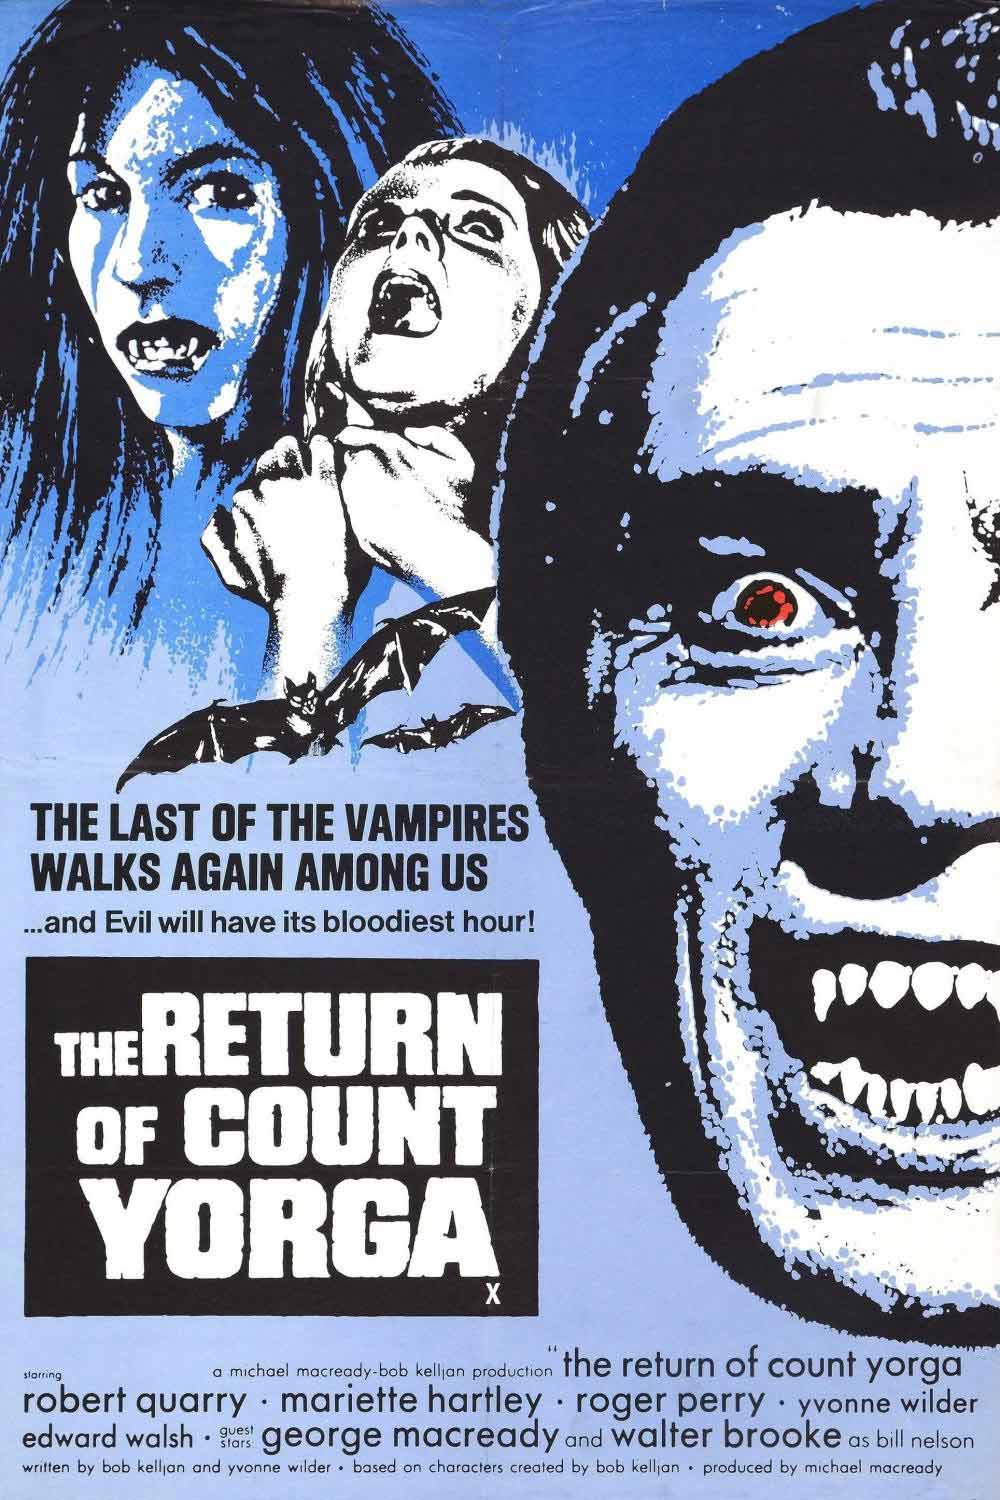 The Return of Count Yorga Details